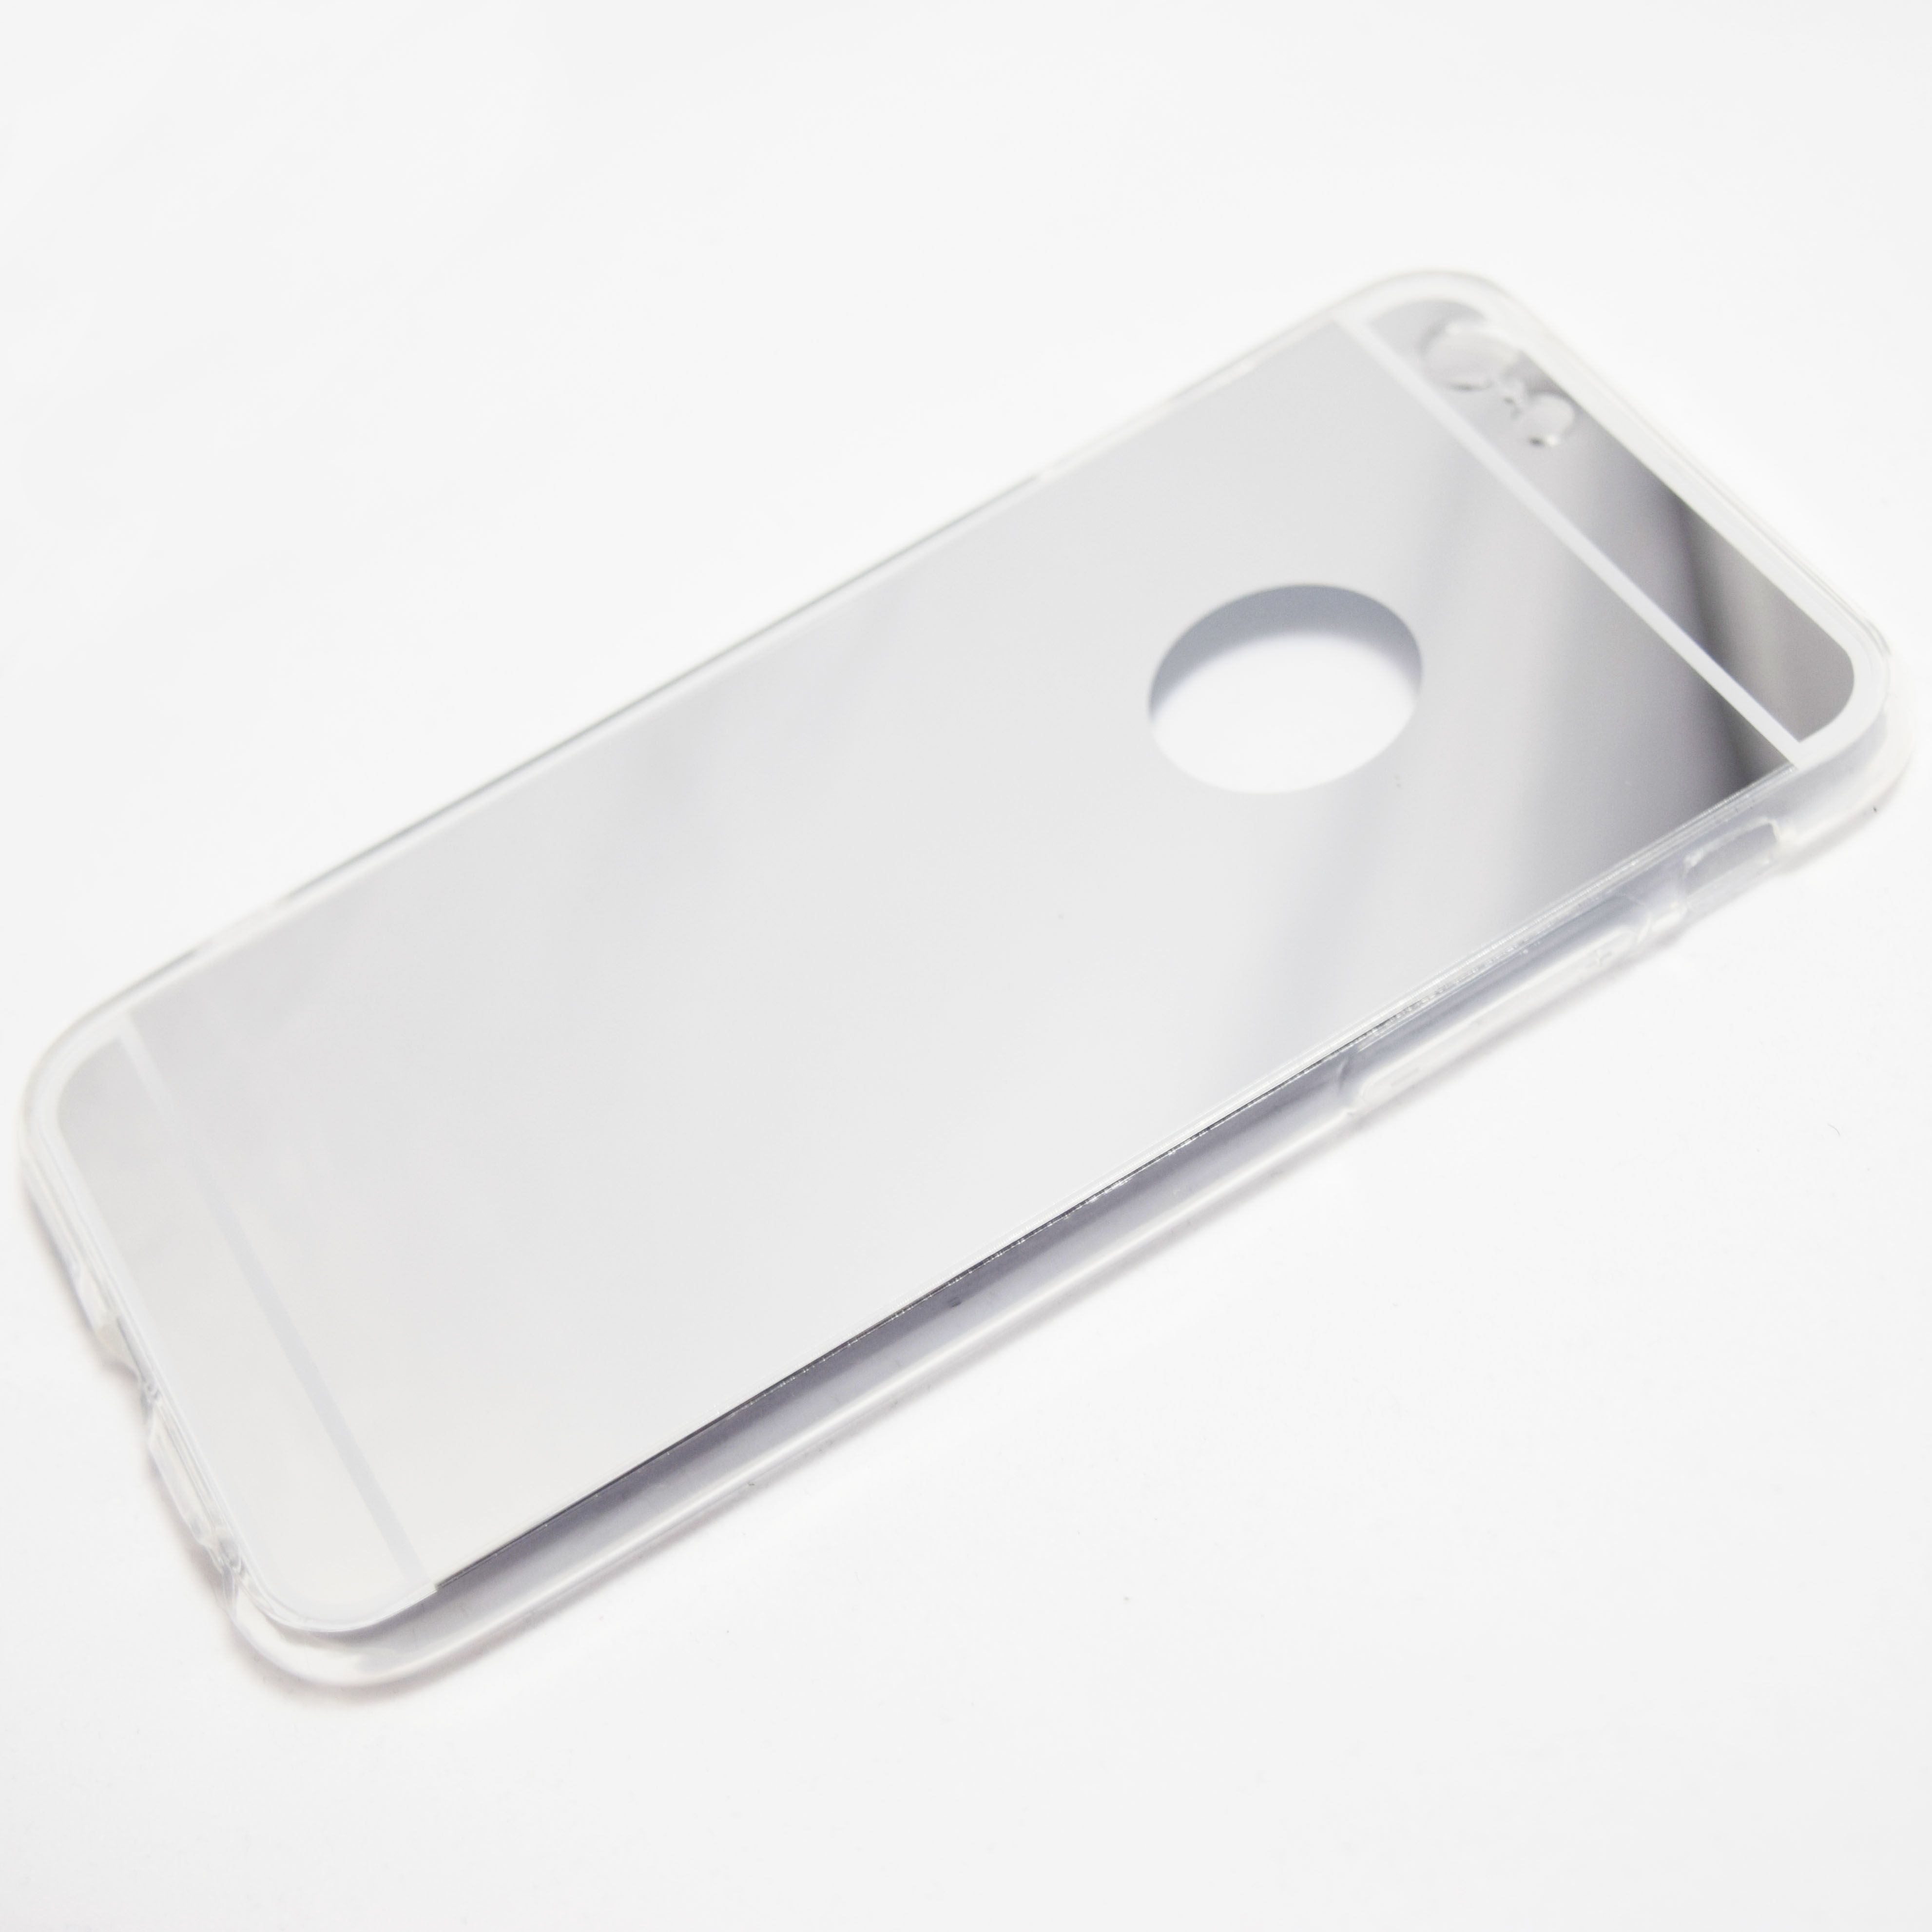 Silver iPhone 6 / iPhone 6S Reflective Mirror Case